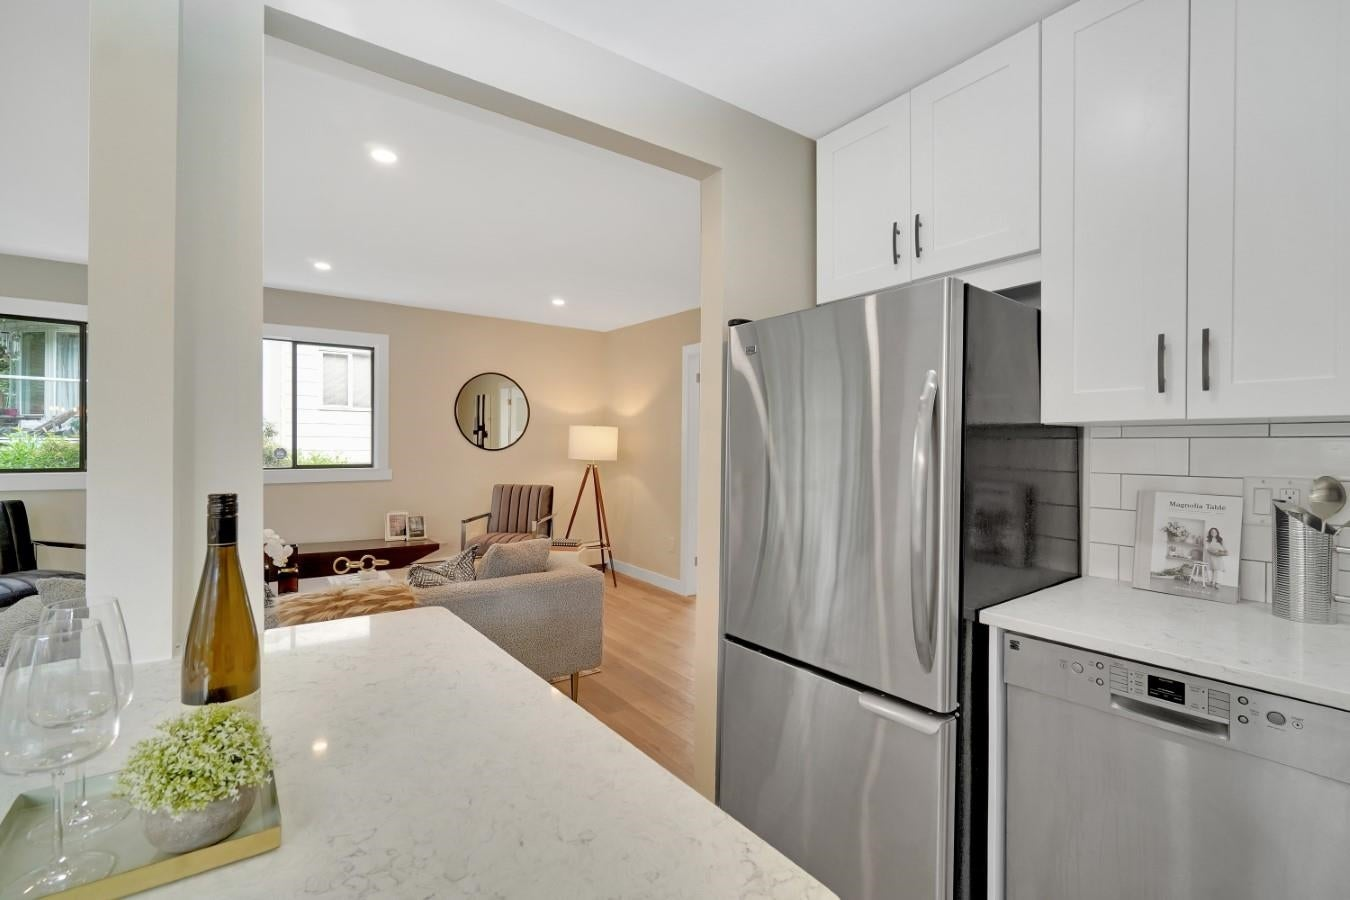 206 330 W 2ND STREET - Lower Lonsdale Apartment/Condo for sale, 2 Bedrooms (R2604160) - #3